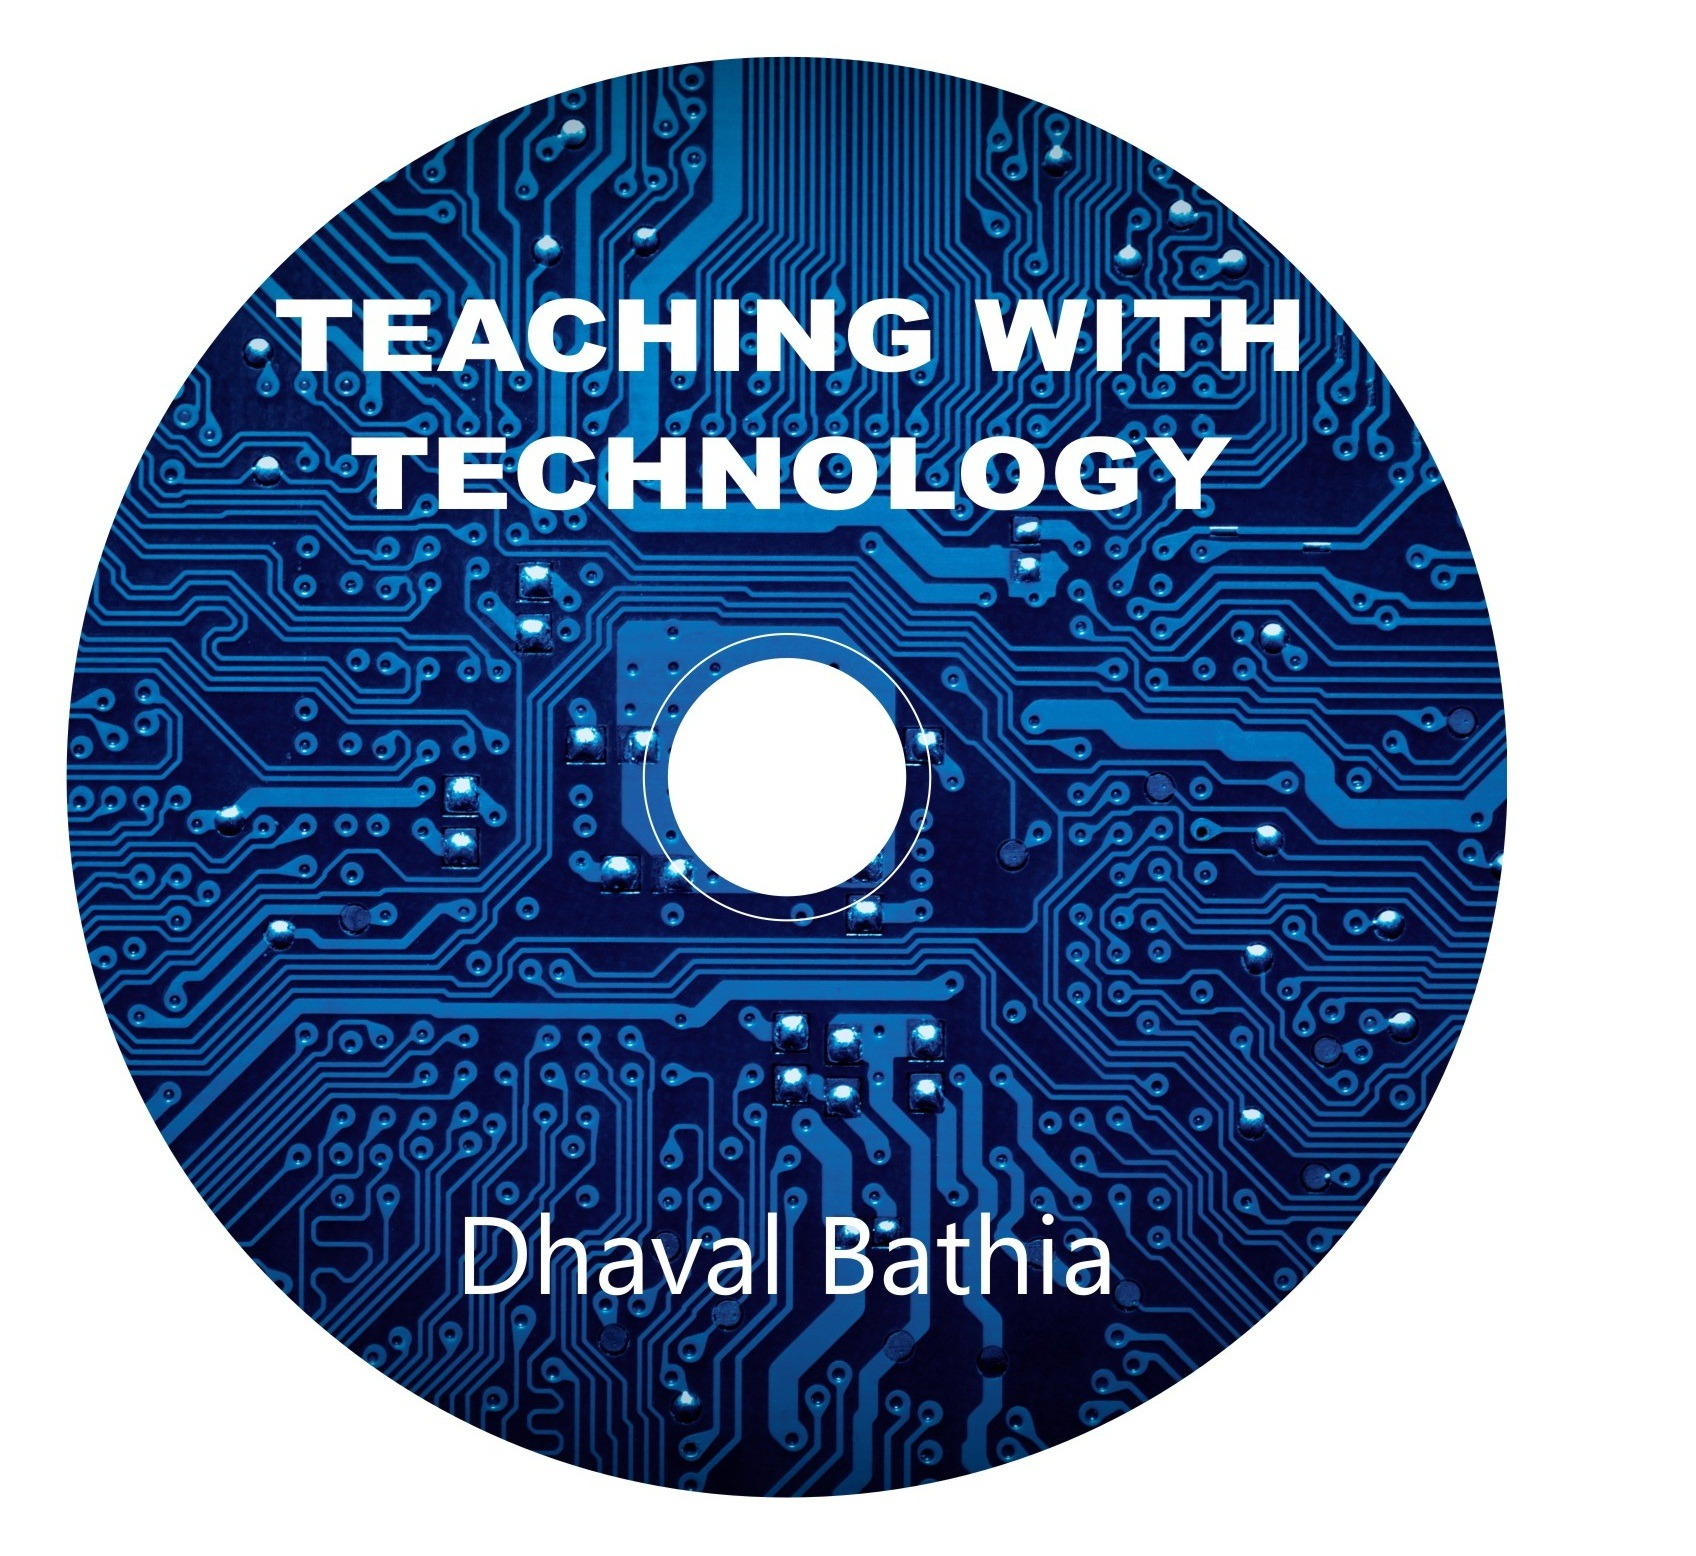 TEACHING WITH TECHNOLOGY2